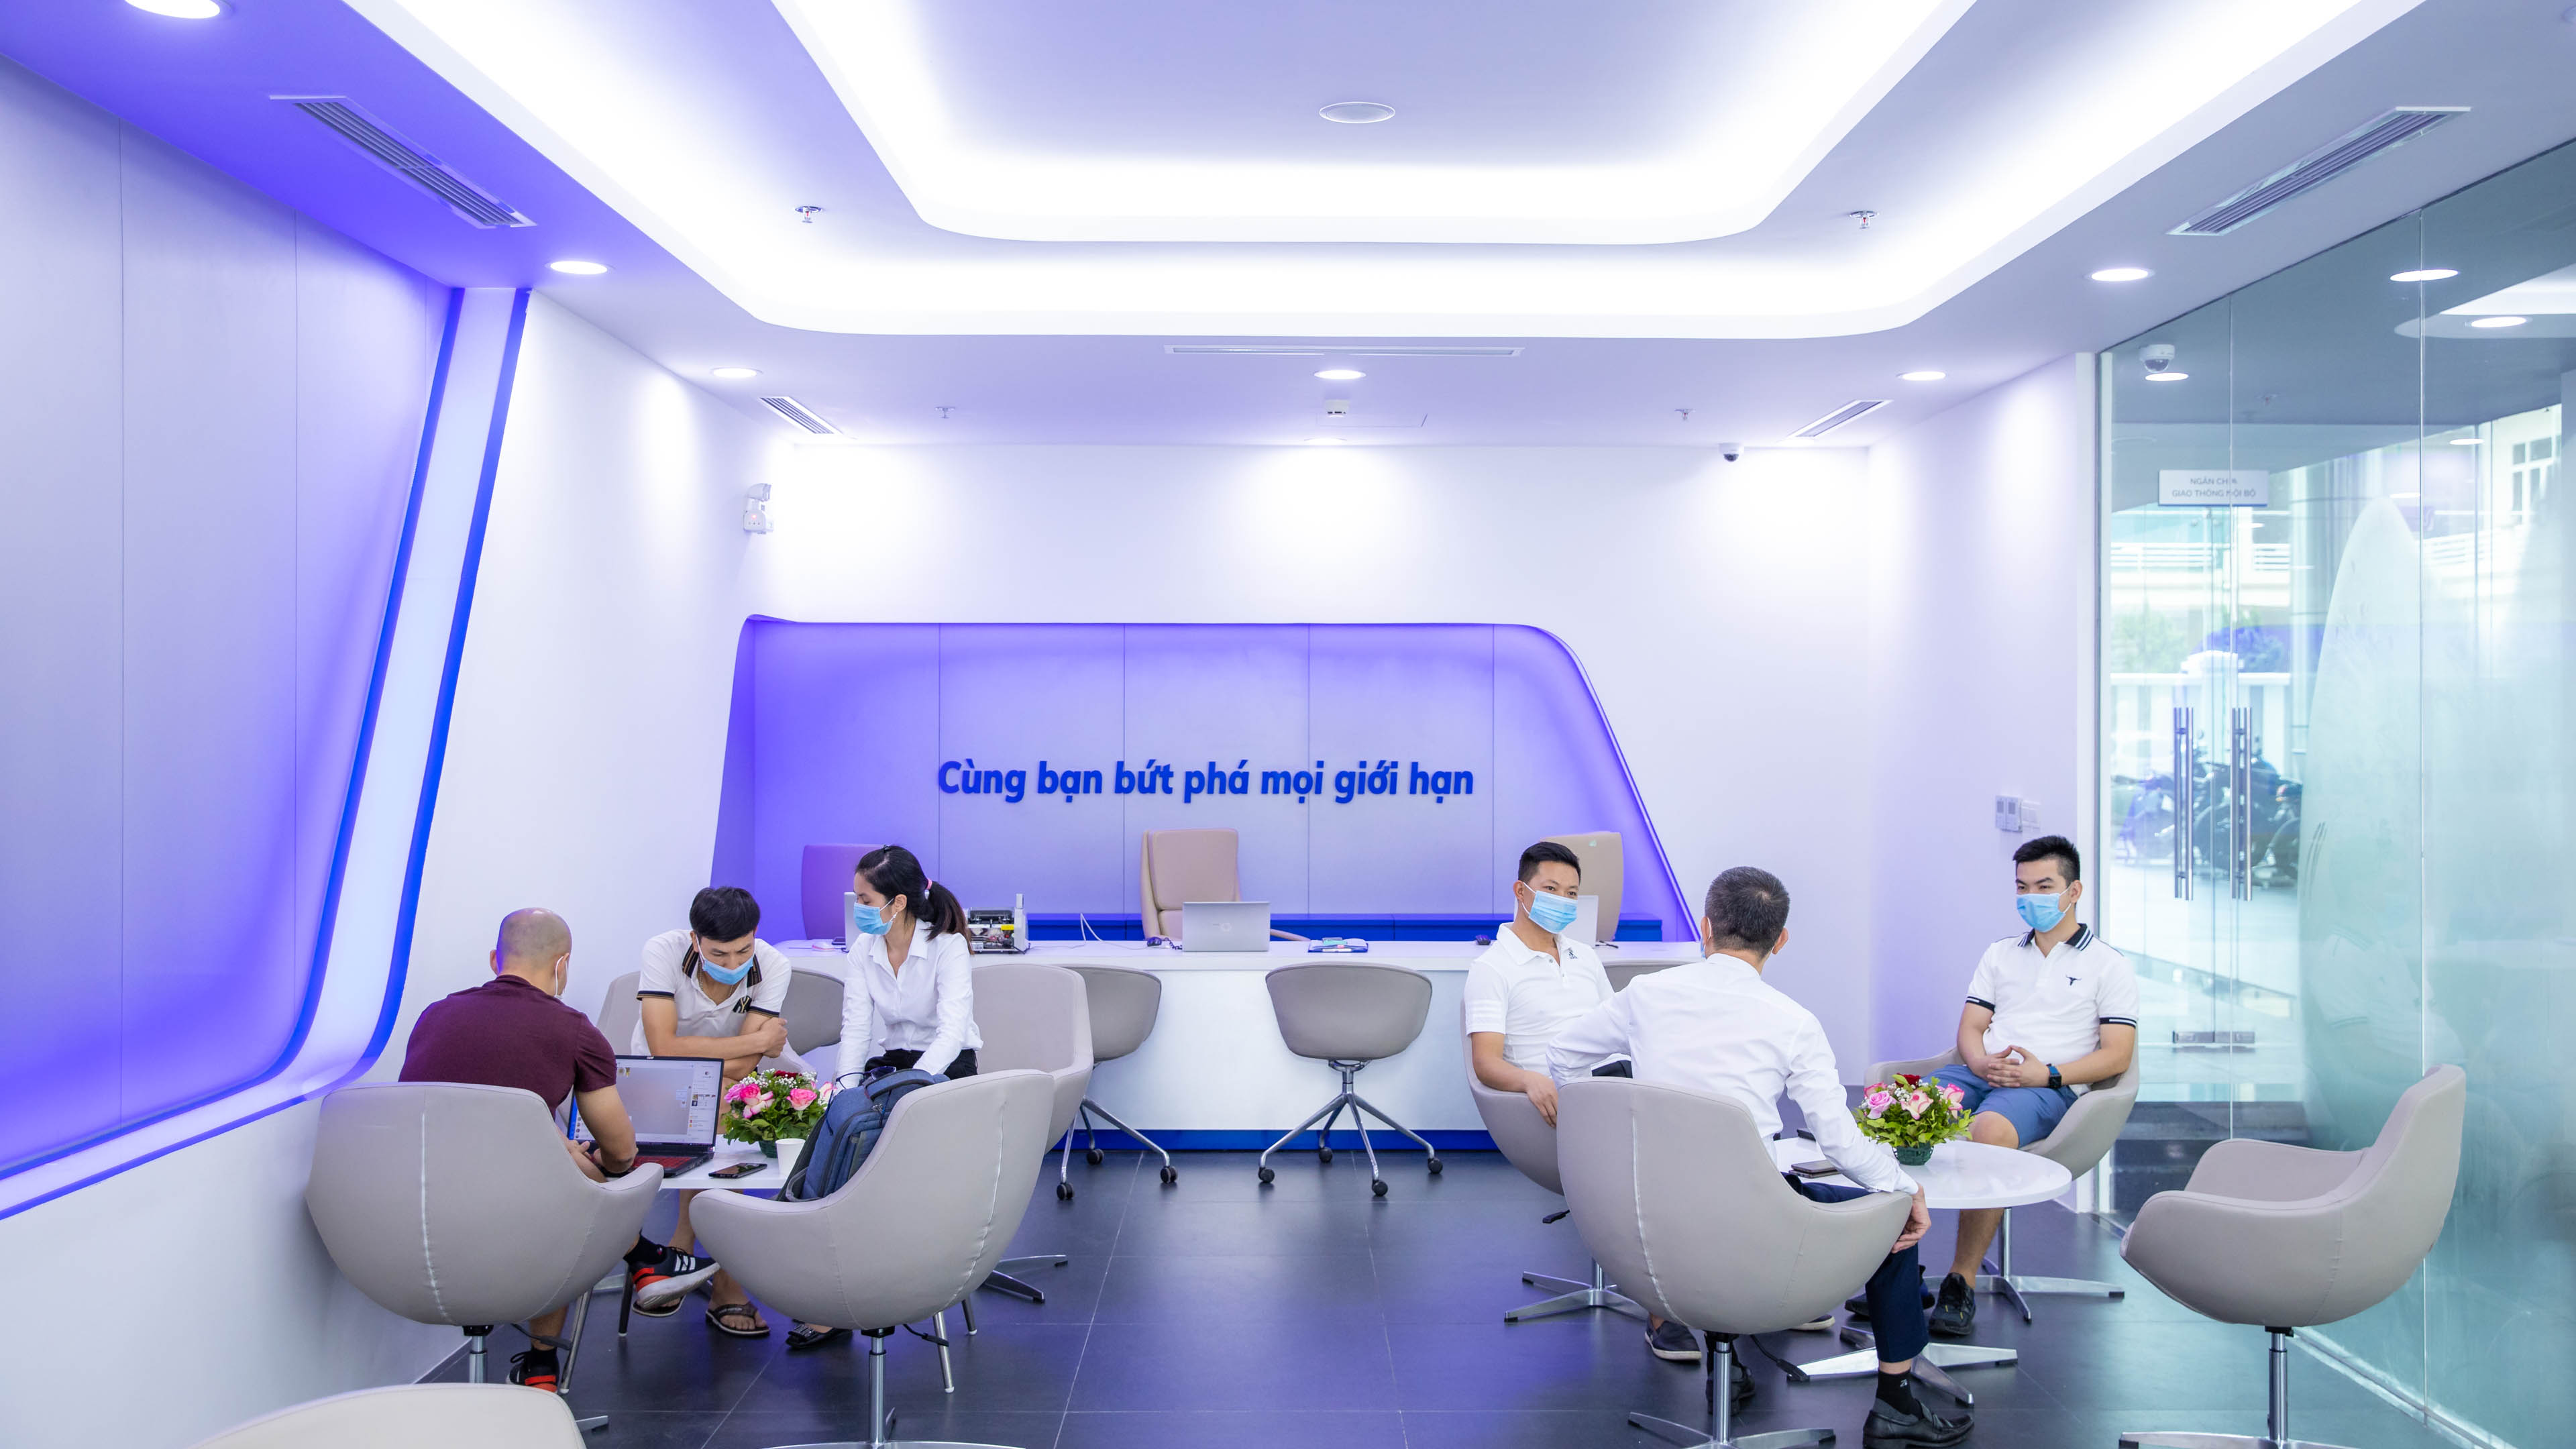 What's special about VinFast's first 3S showroom in Cam Pha?  srcampha-anh7.jpg